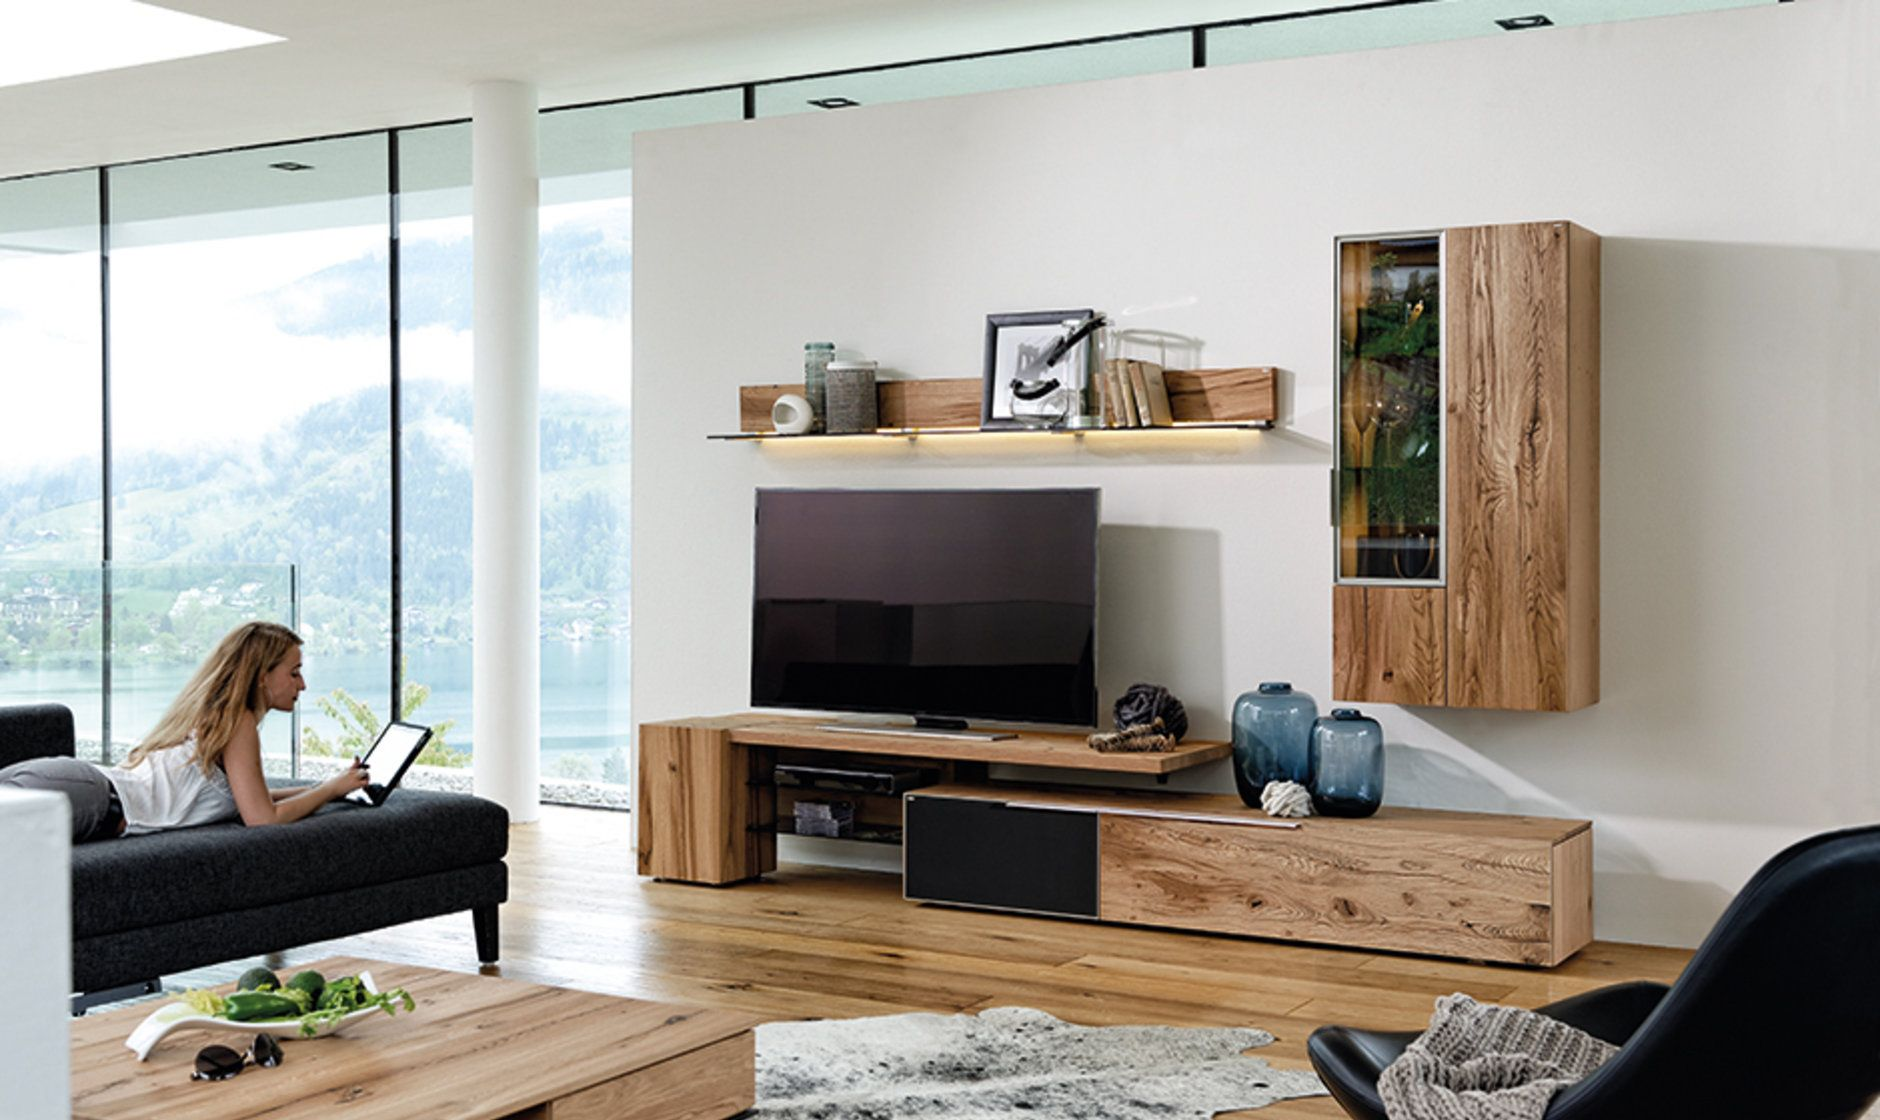 Reclaimed Oak Wood Living Natural Wood Furniture Solid Wood Furniture Wohnen Wohnzimmer Tv Wohn Design